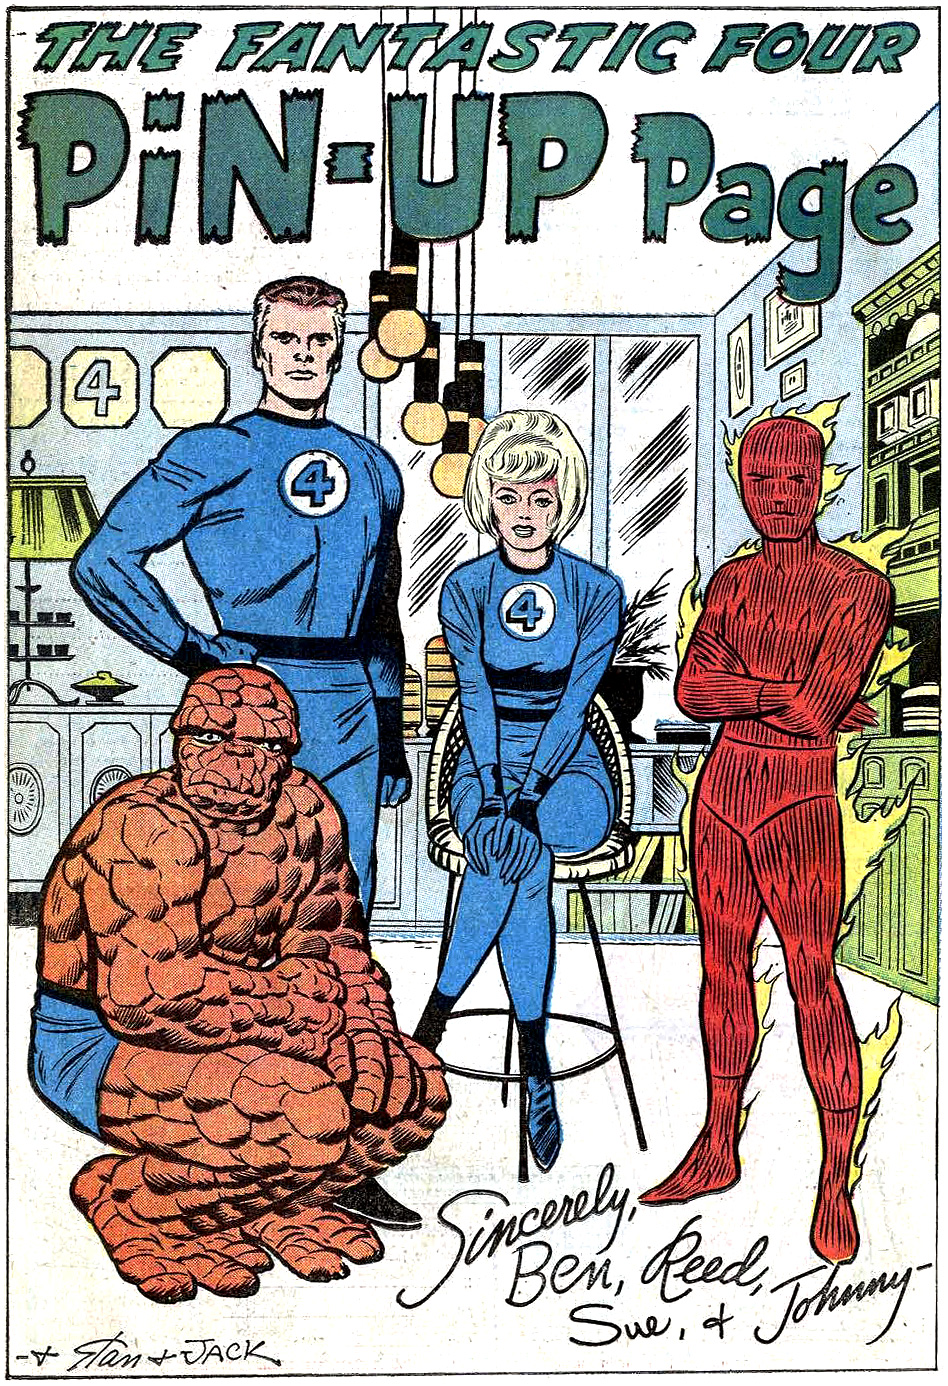 Fantastic-Four-Pin-Up